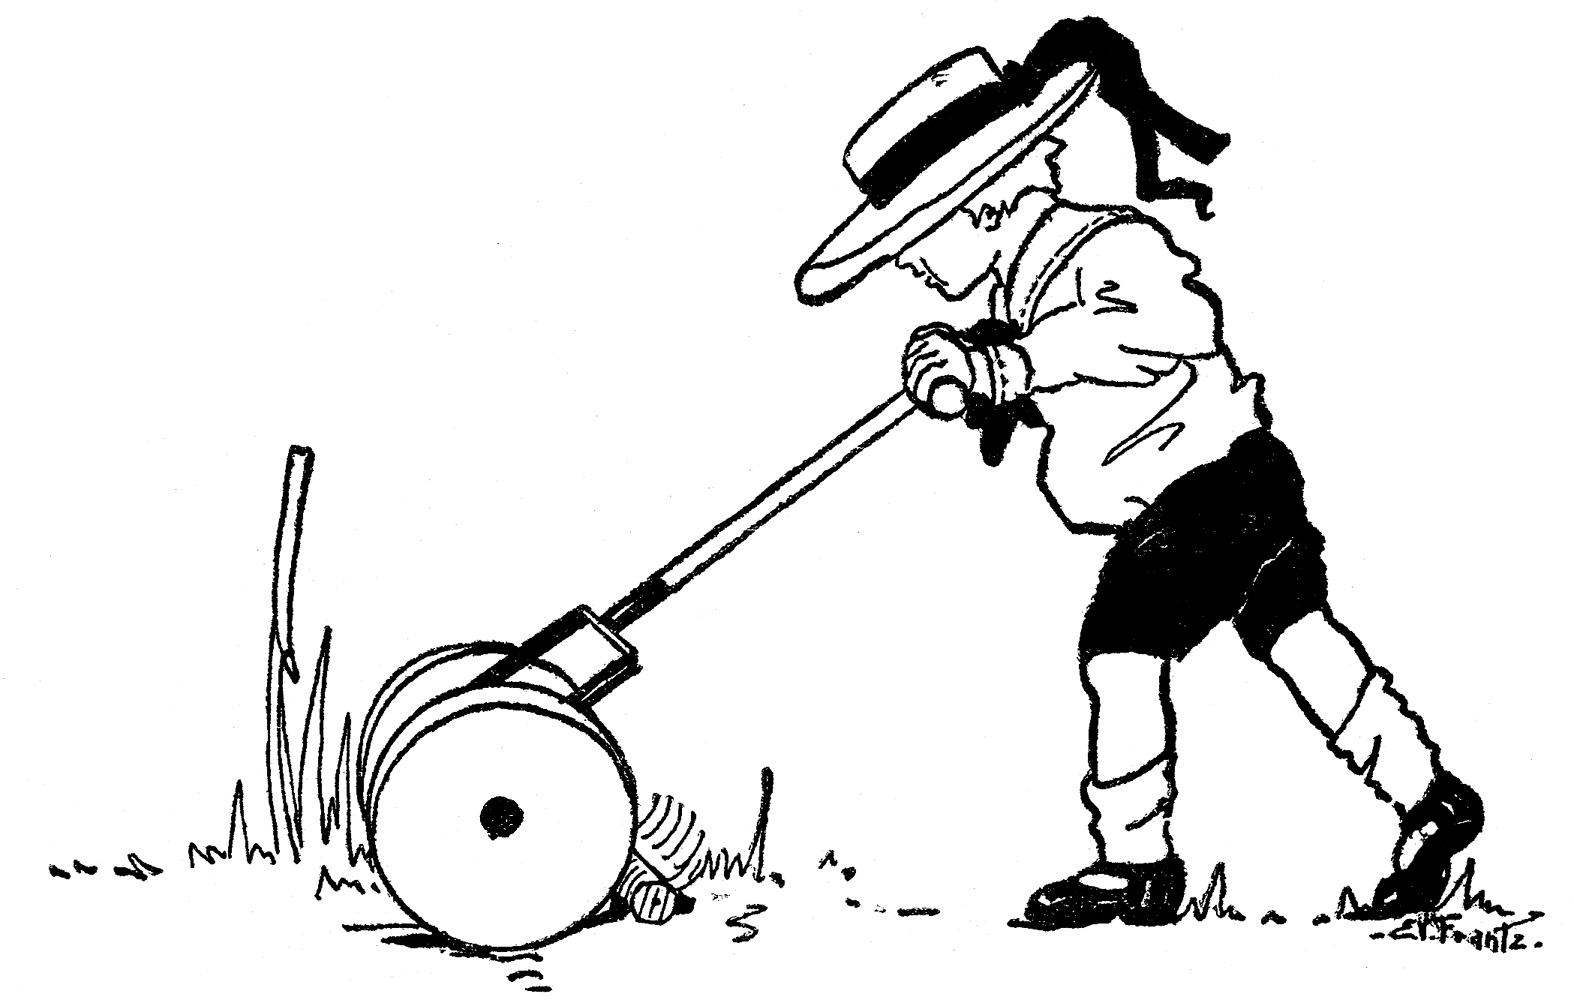 Vintage Summer Clip Art - Boy with Lawn Mower - The ...